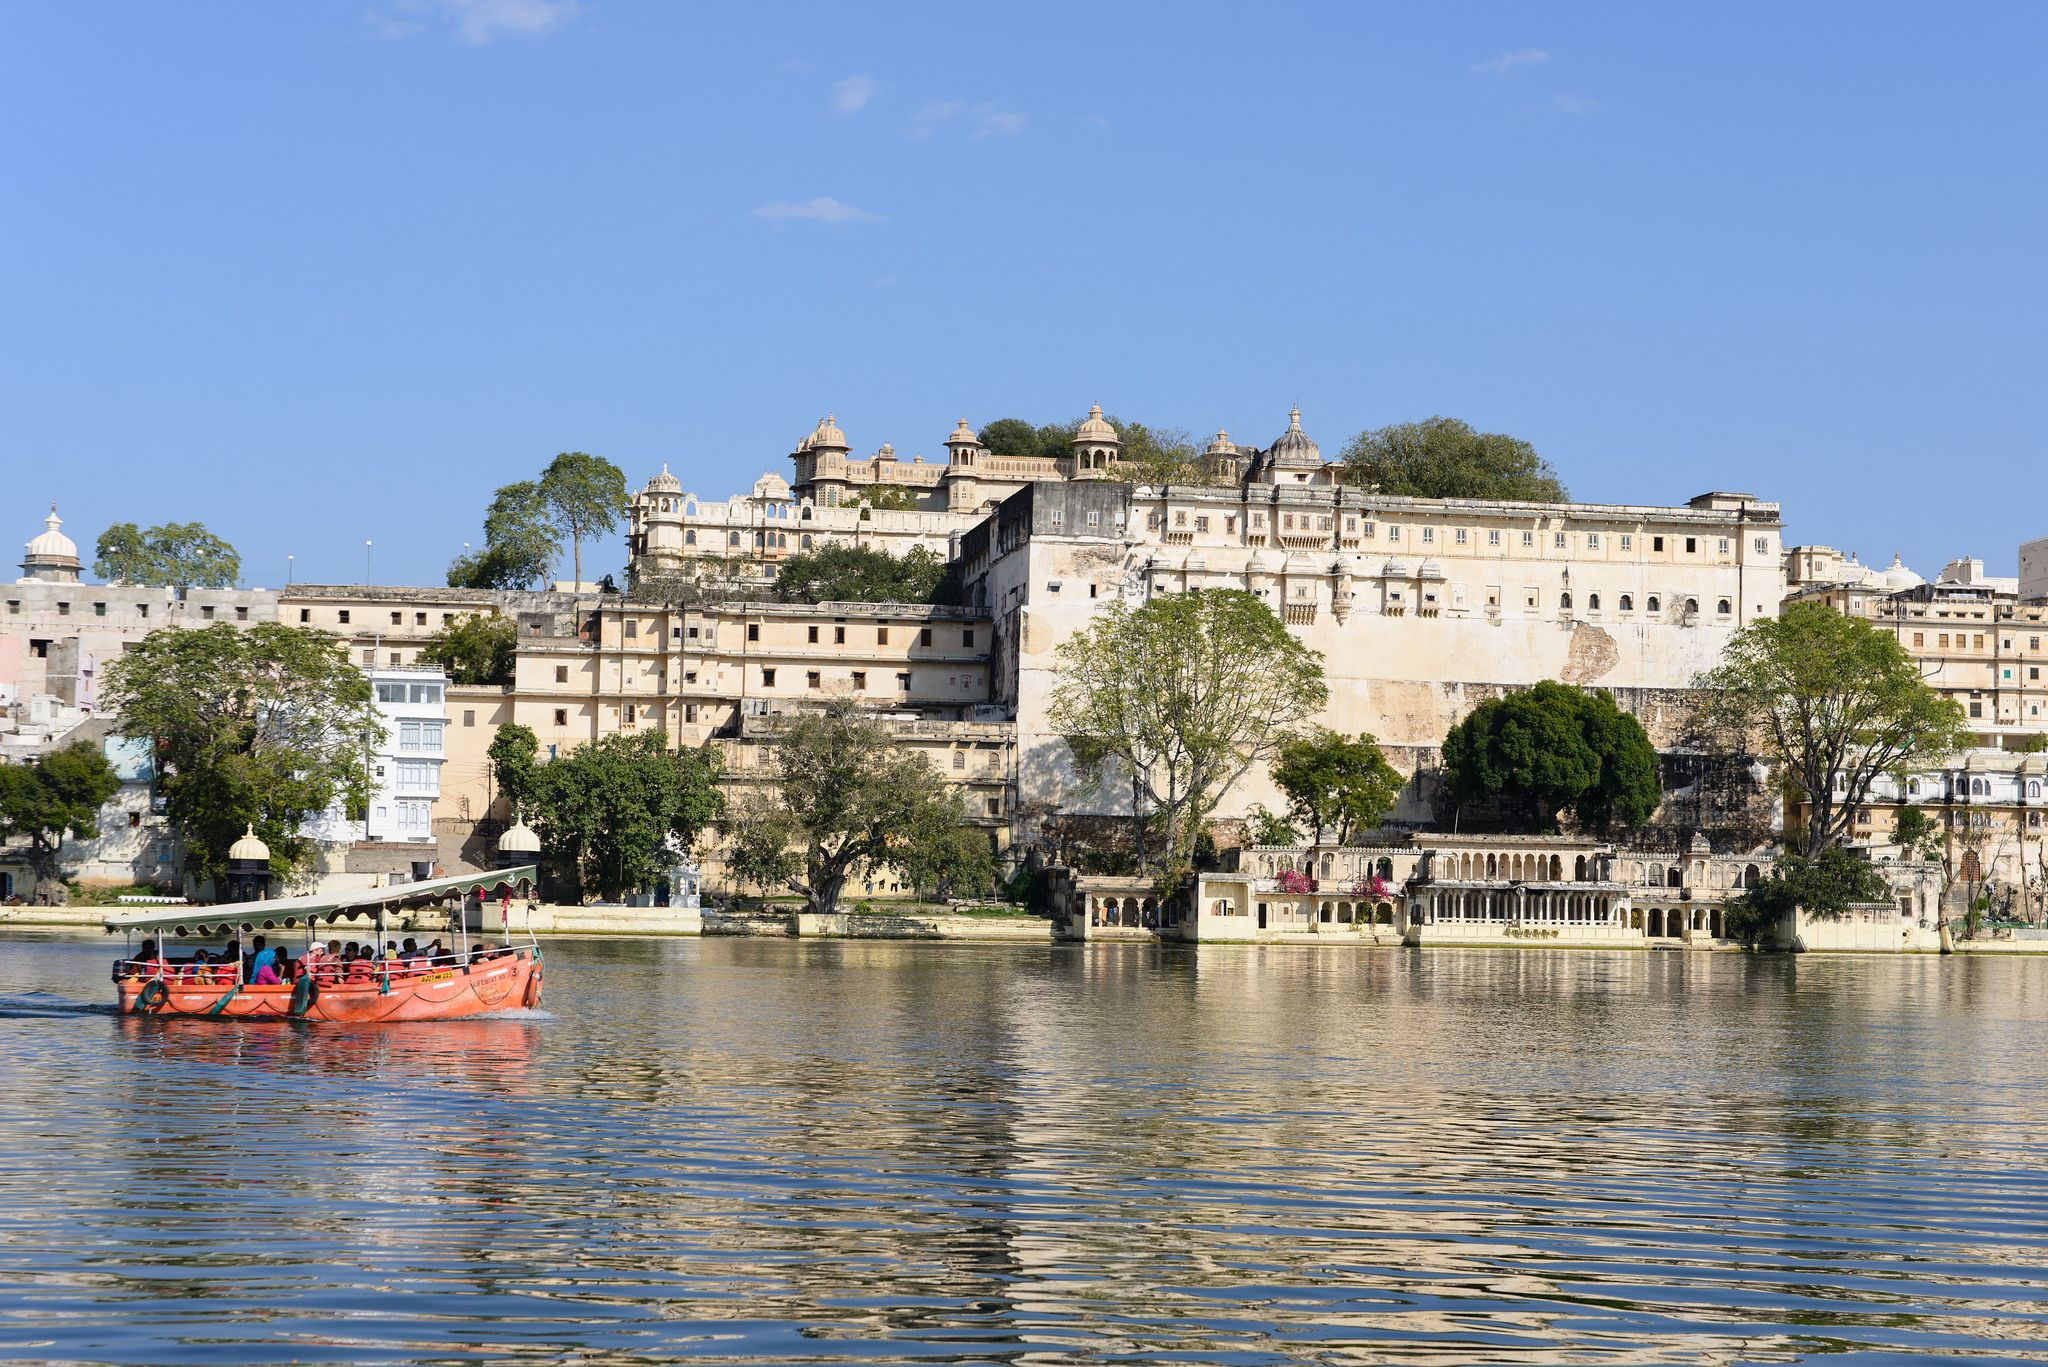 https://flic.kr/p/u2ATXa   Udaipur, India - Taj Lake Palace   Lake Palace is a luxury hotel, which has 83 rooms and suites featuring white marble walls. The Lake Palace is located on the island of Jag Niwas in Lake Pichola, Udaipur, India, and its natural foundation spans 4 acres. The hotel operates a speed boat which transports guests to the hotel from a jetty at the City Palace. It has been voted as the most romantic hotel in India and in the world.